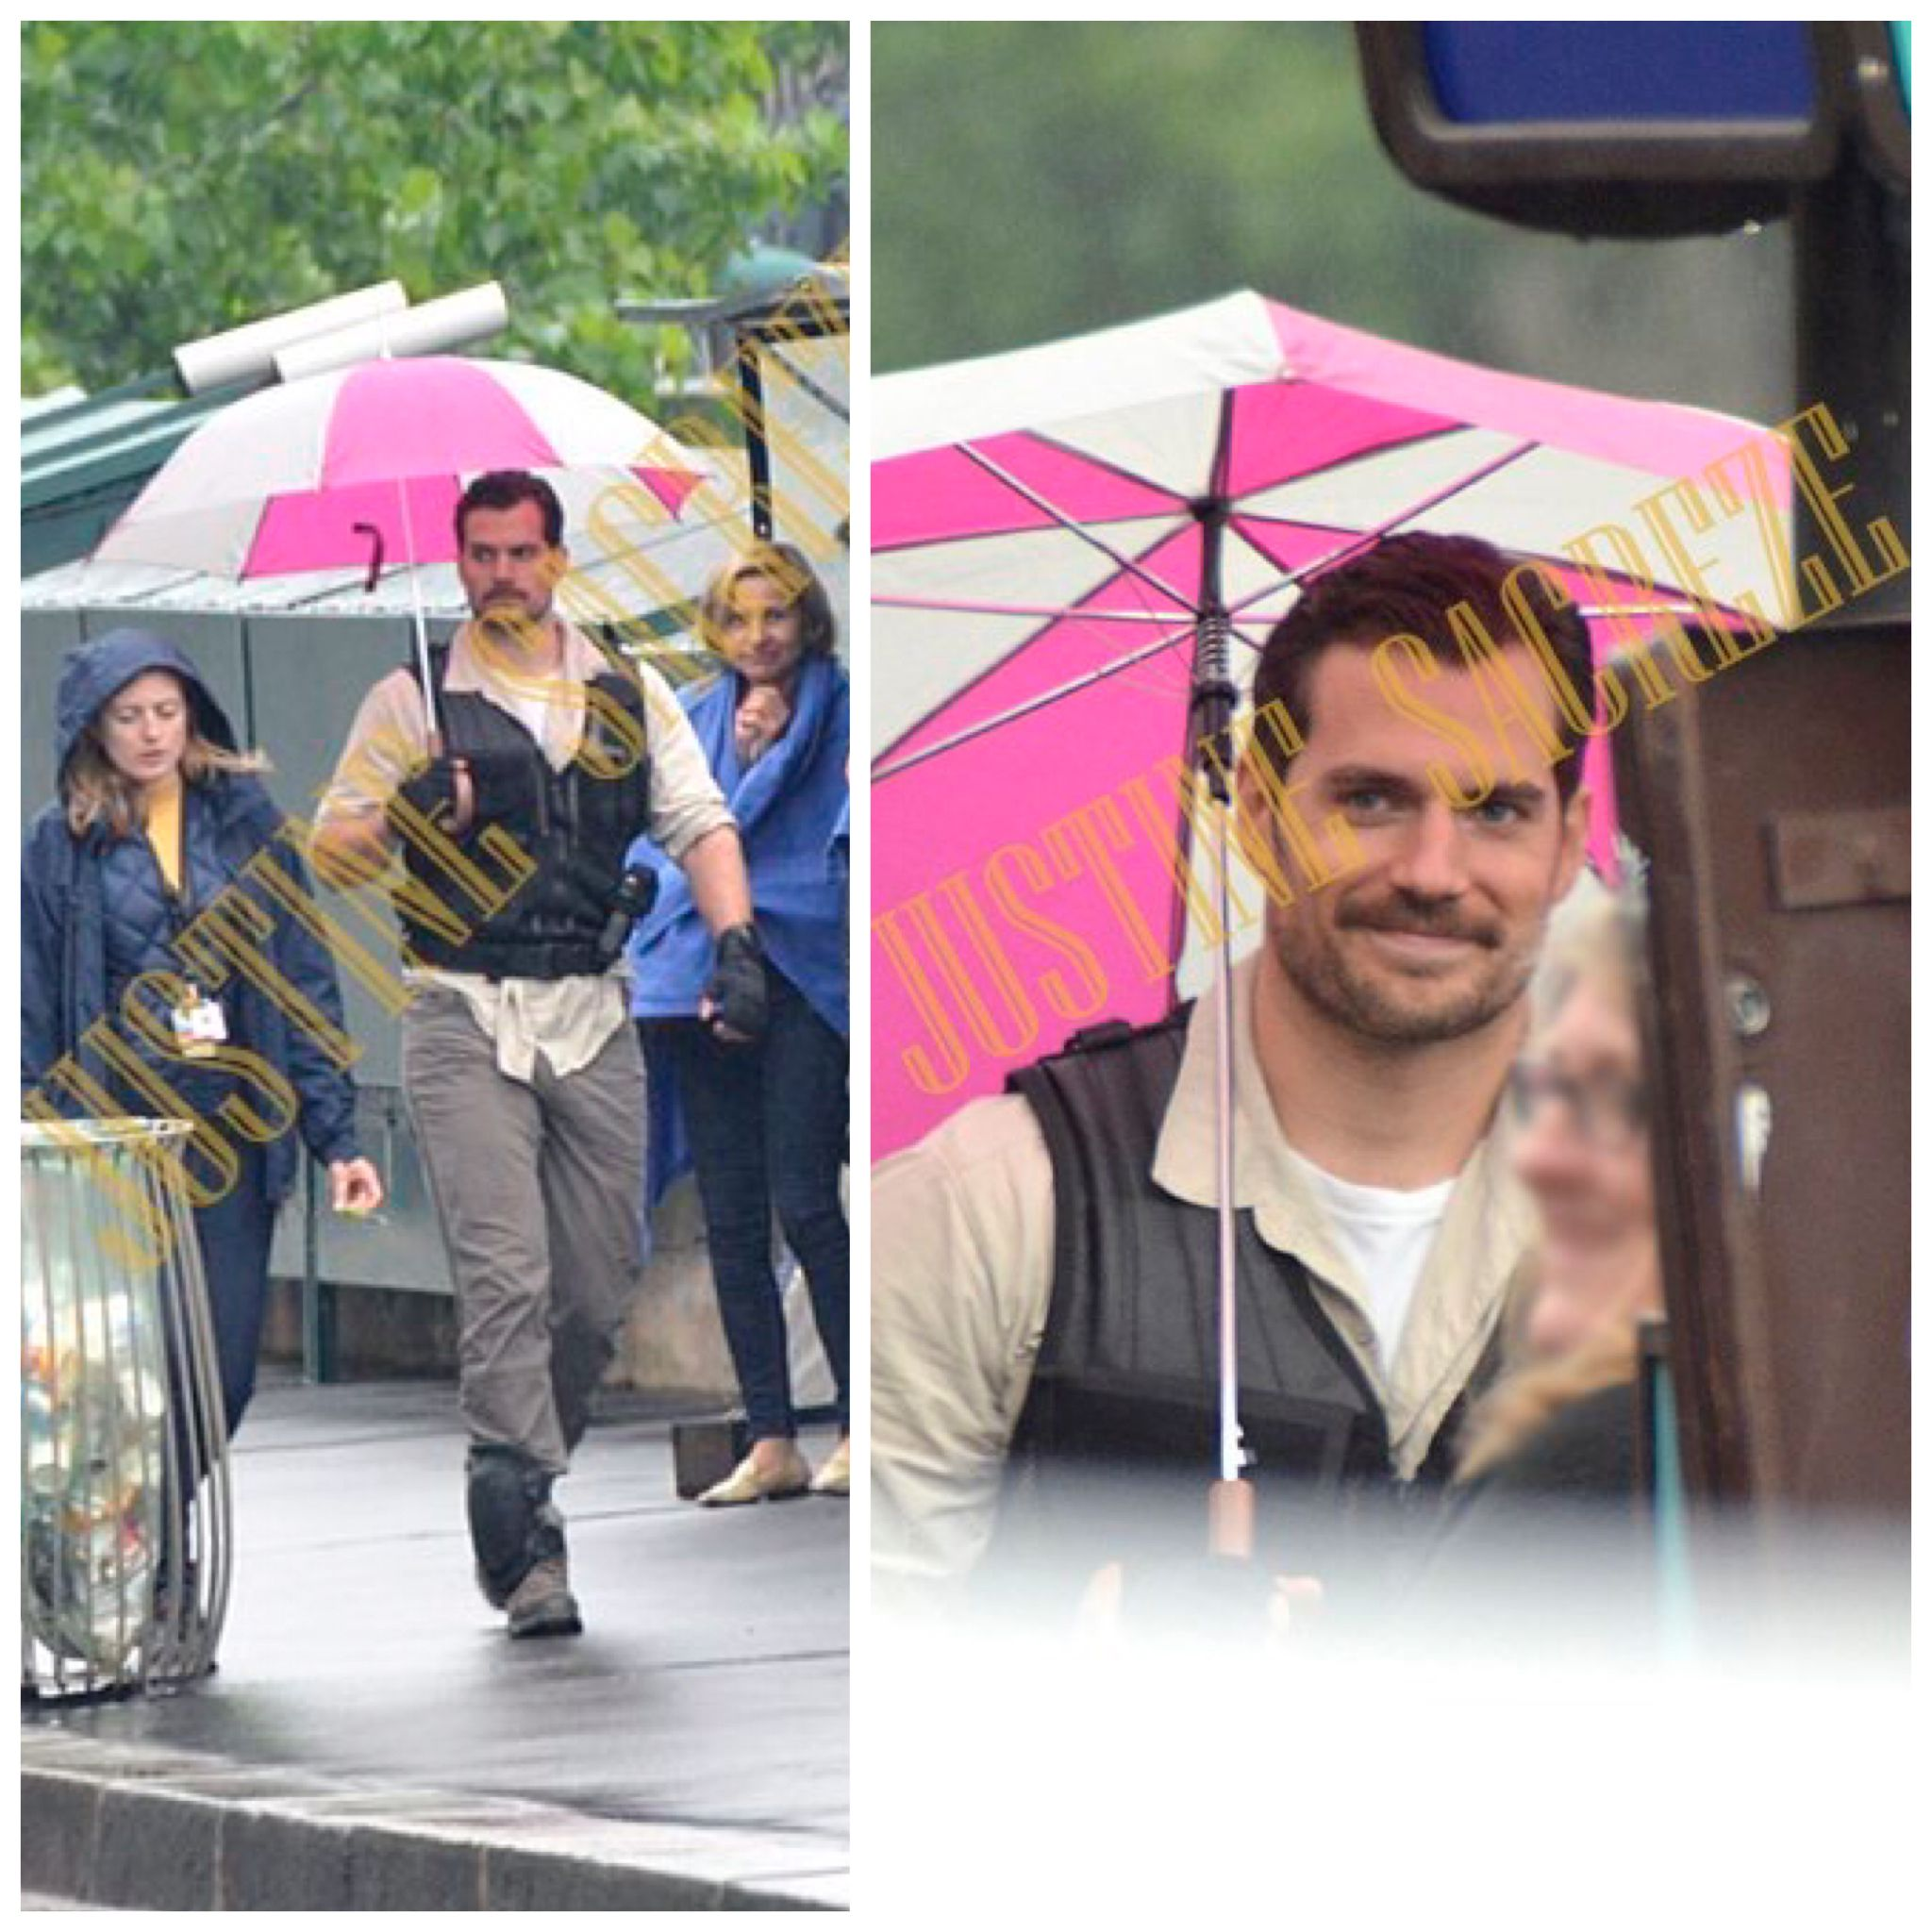 First look at Henry Cavill on today's set of #MissionImpossible6. LATEST on the blog.  http://bit.ly/2qNSCJN #Filming #Paris #SetLife #HenryCavill @Nokinstars (thank you).